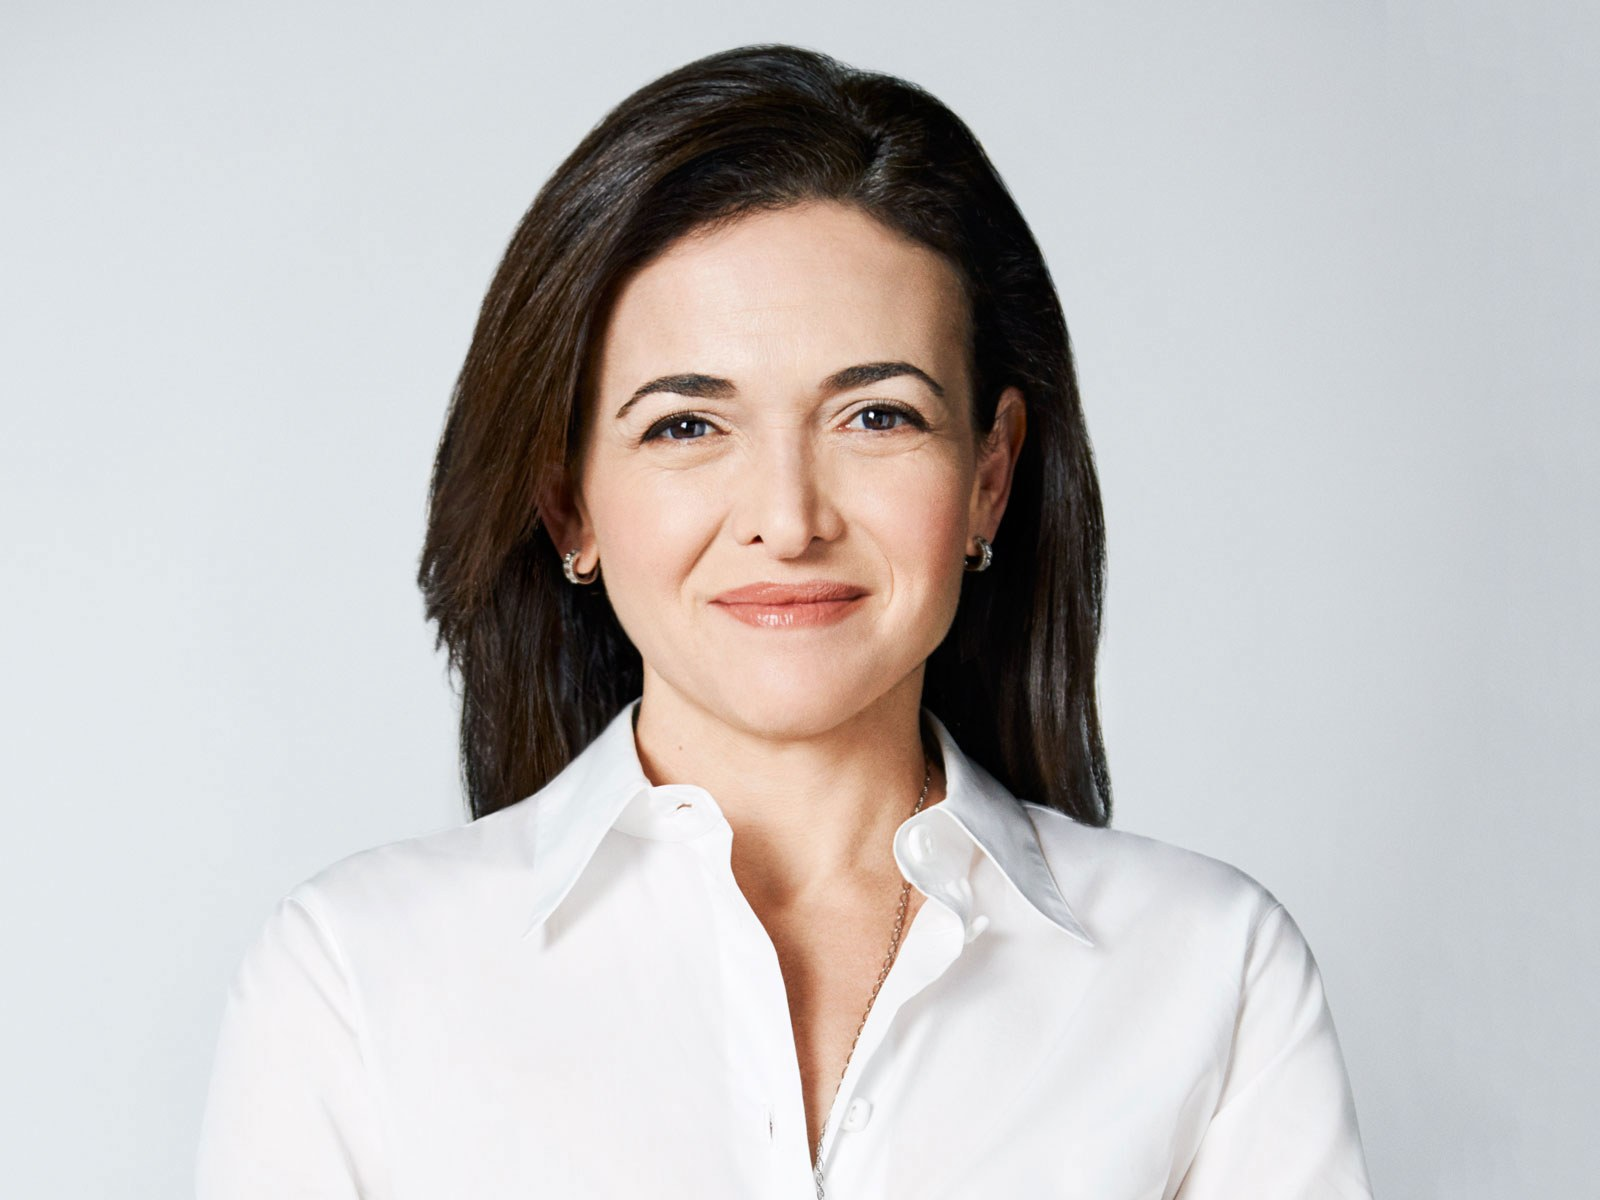 Building resilience – a chat with Sheryl Sandberg